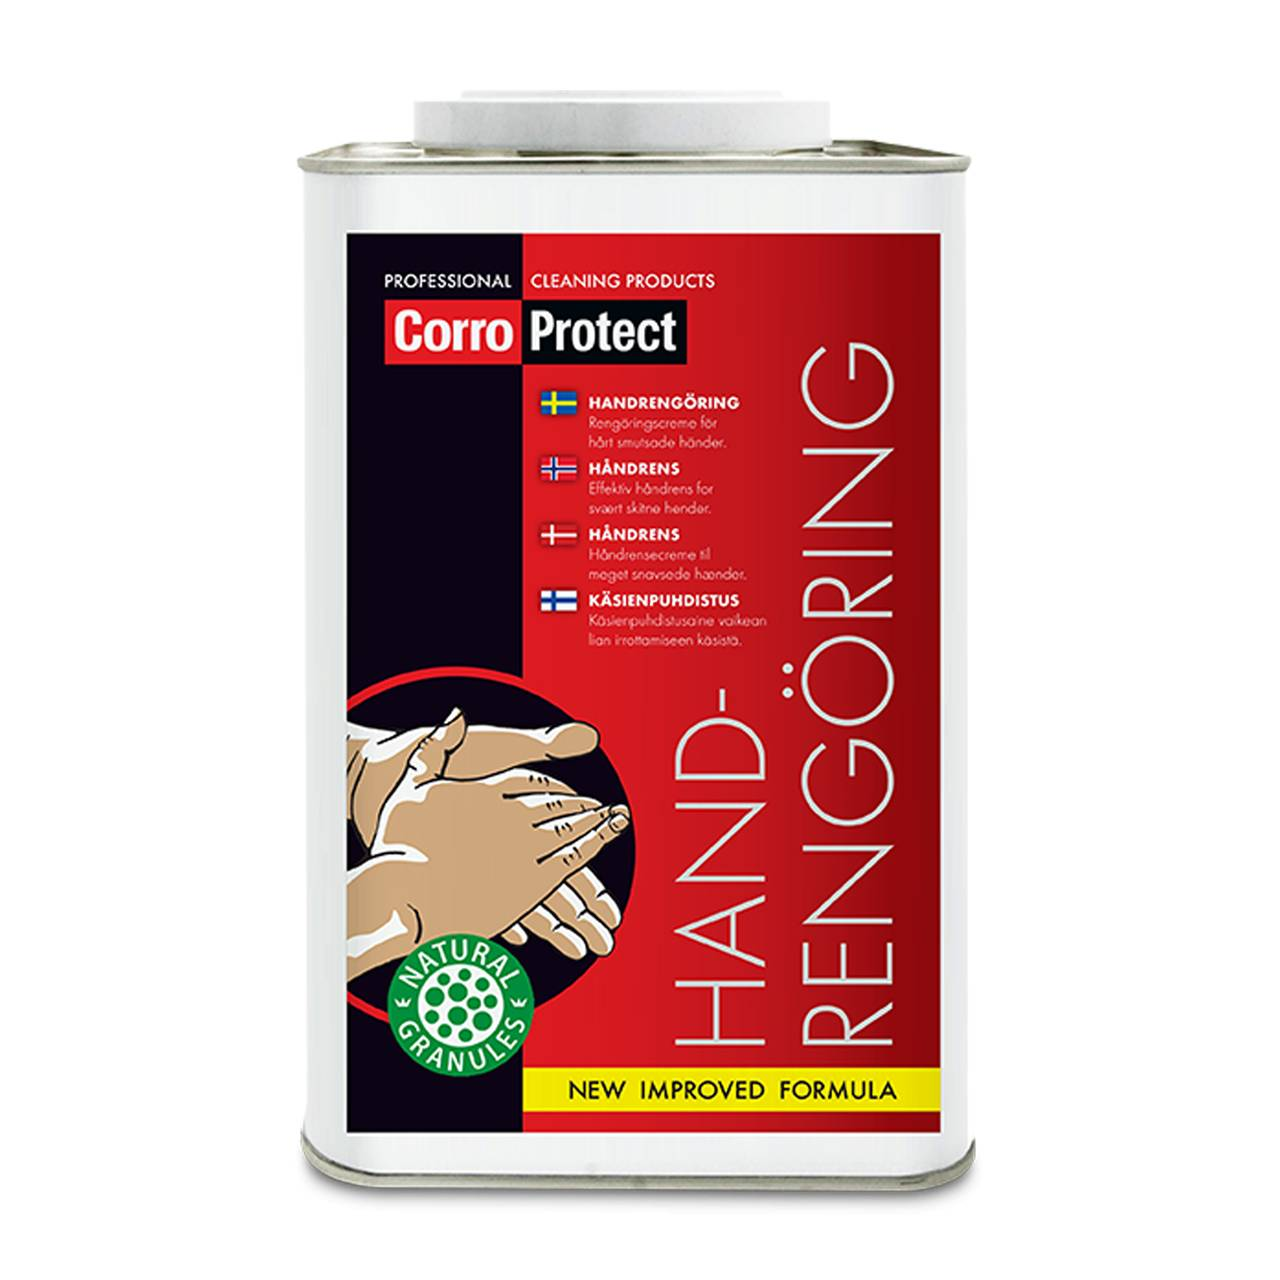 CorroProtect Nettoyant pour les Mains CorroProtect 4,5L